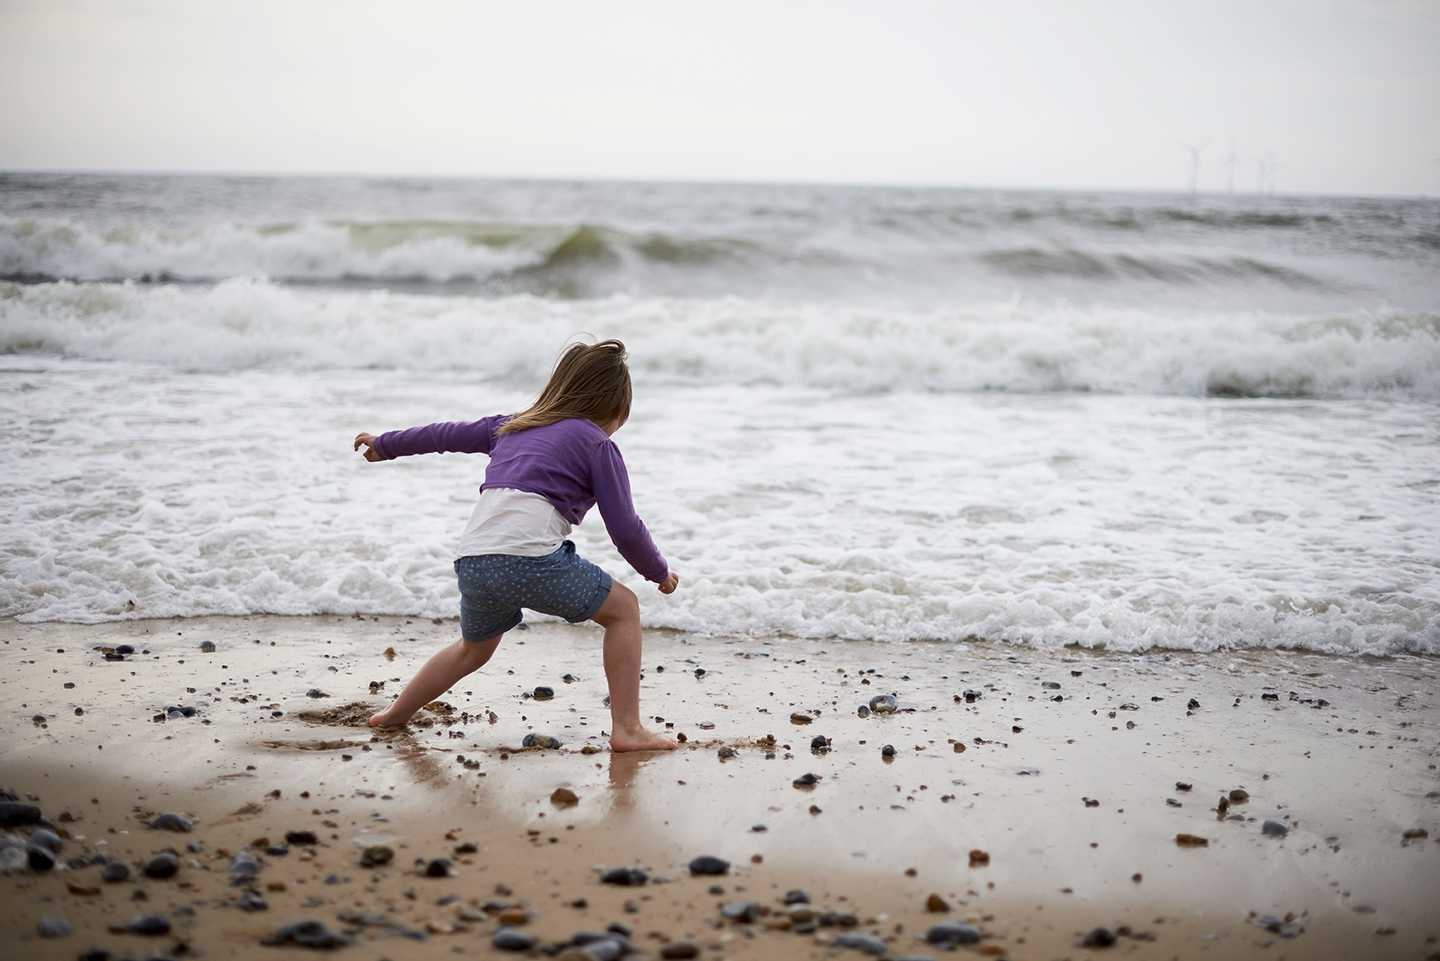 Child burying her toes in the sand by the waters edge on the beach